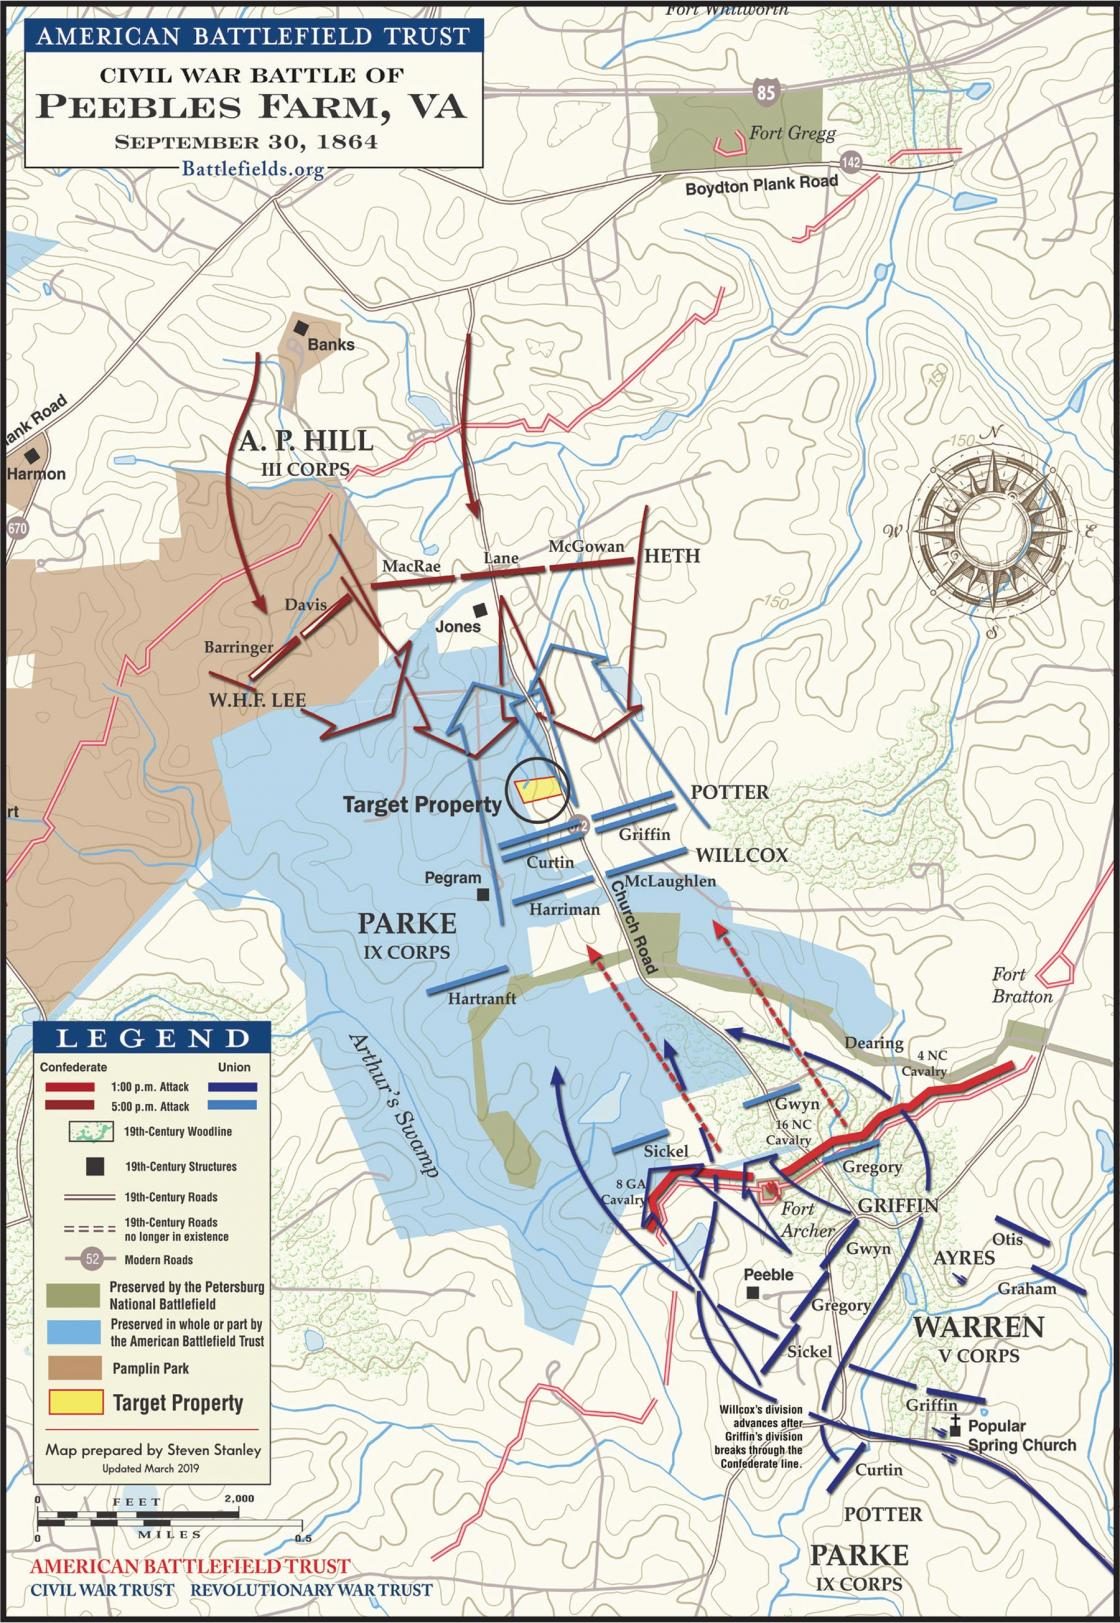 The Battle of Peebles Farm - September 30, 1864